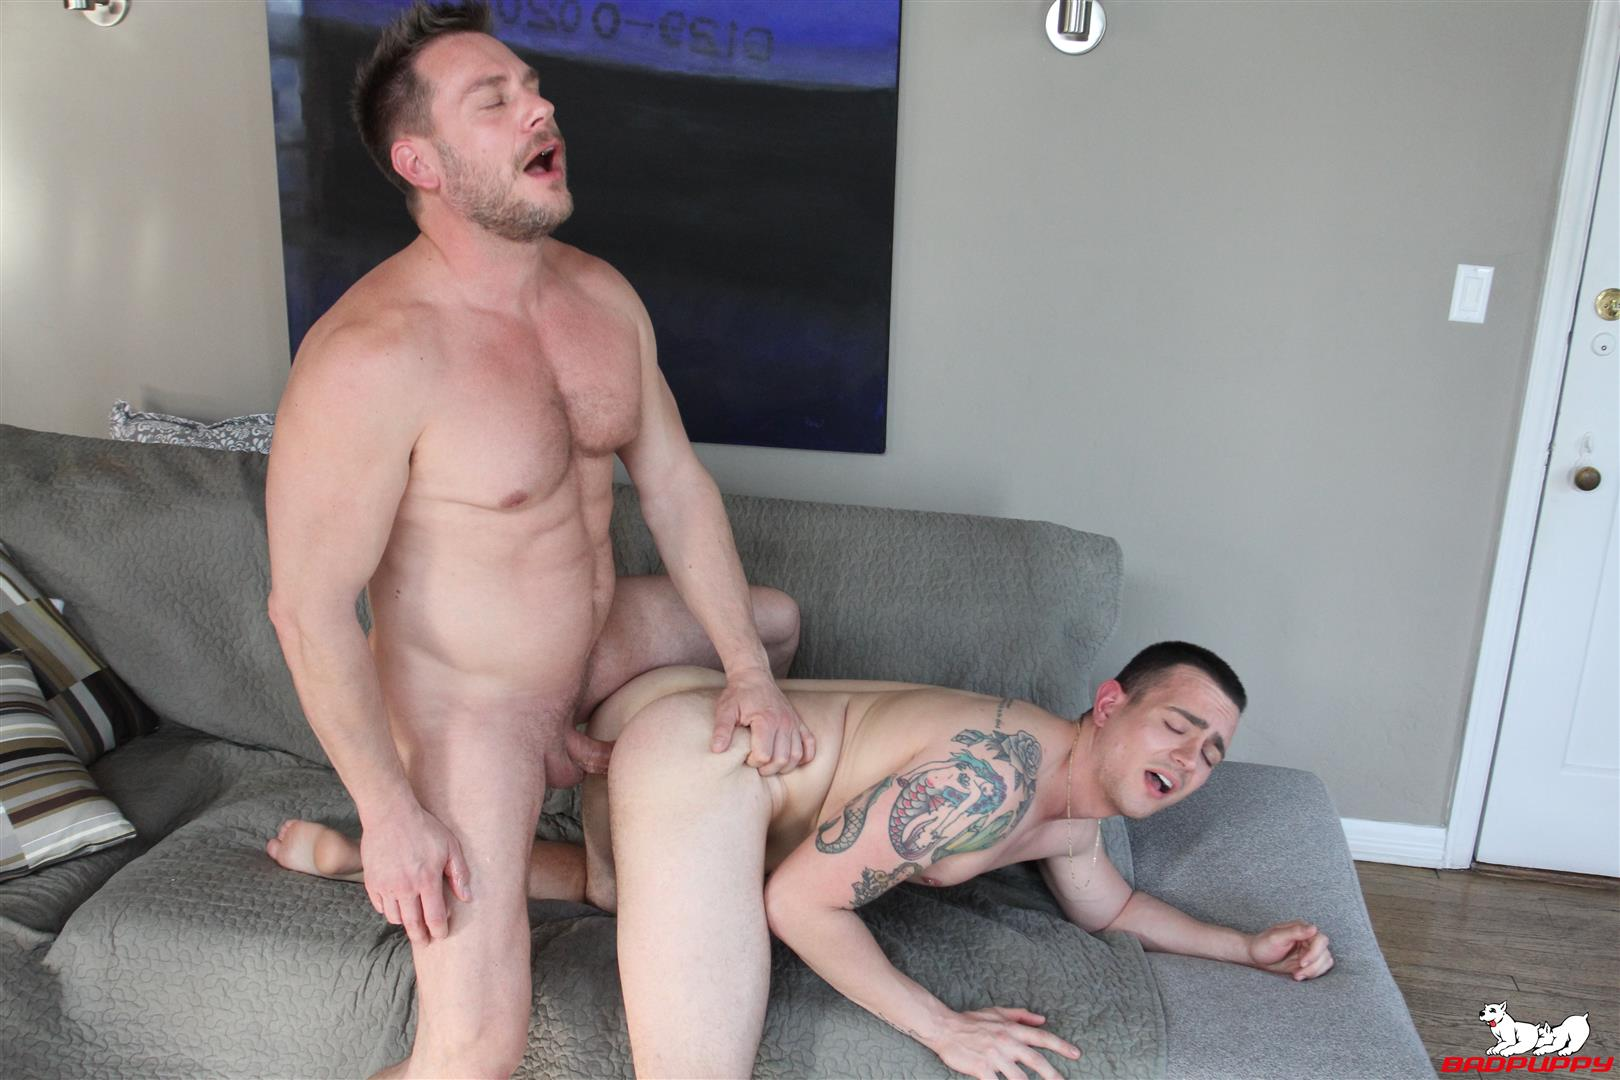 Badpuppy-Hans-Berlin-and-Ryan-Kroger-Big-Dick-Daddy-Barebacking-Boy-10 Big Dick Daddy Hans Berlin Barebacking Ryan Kroger